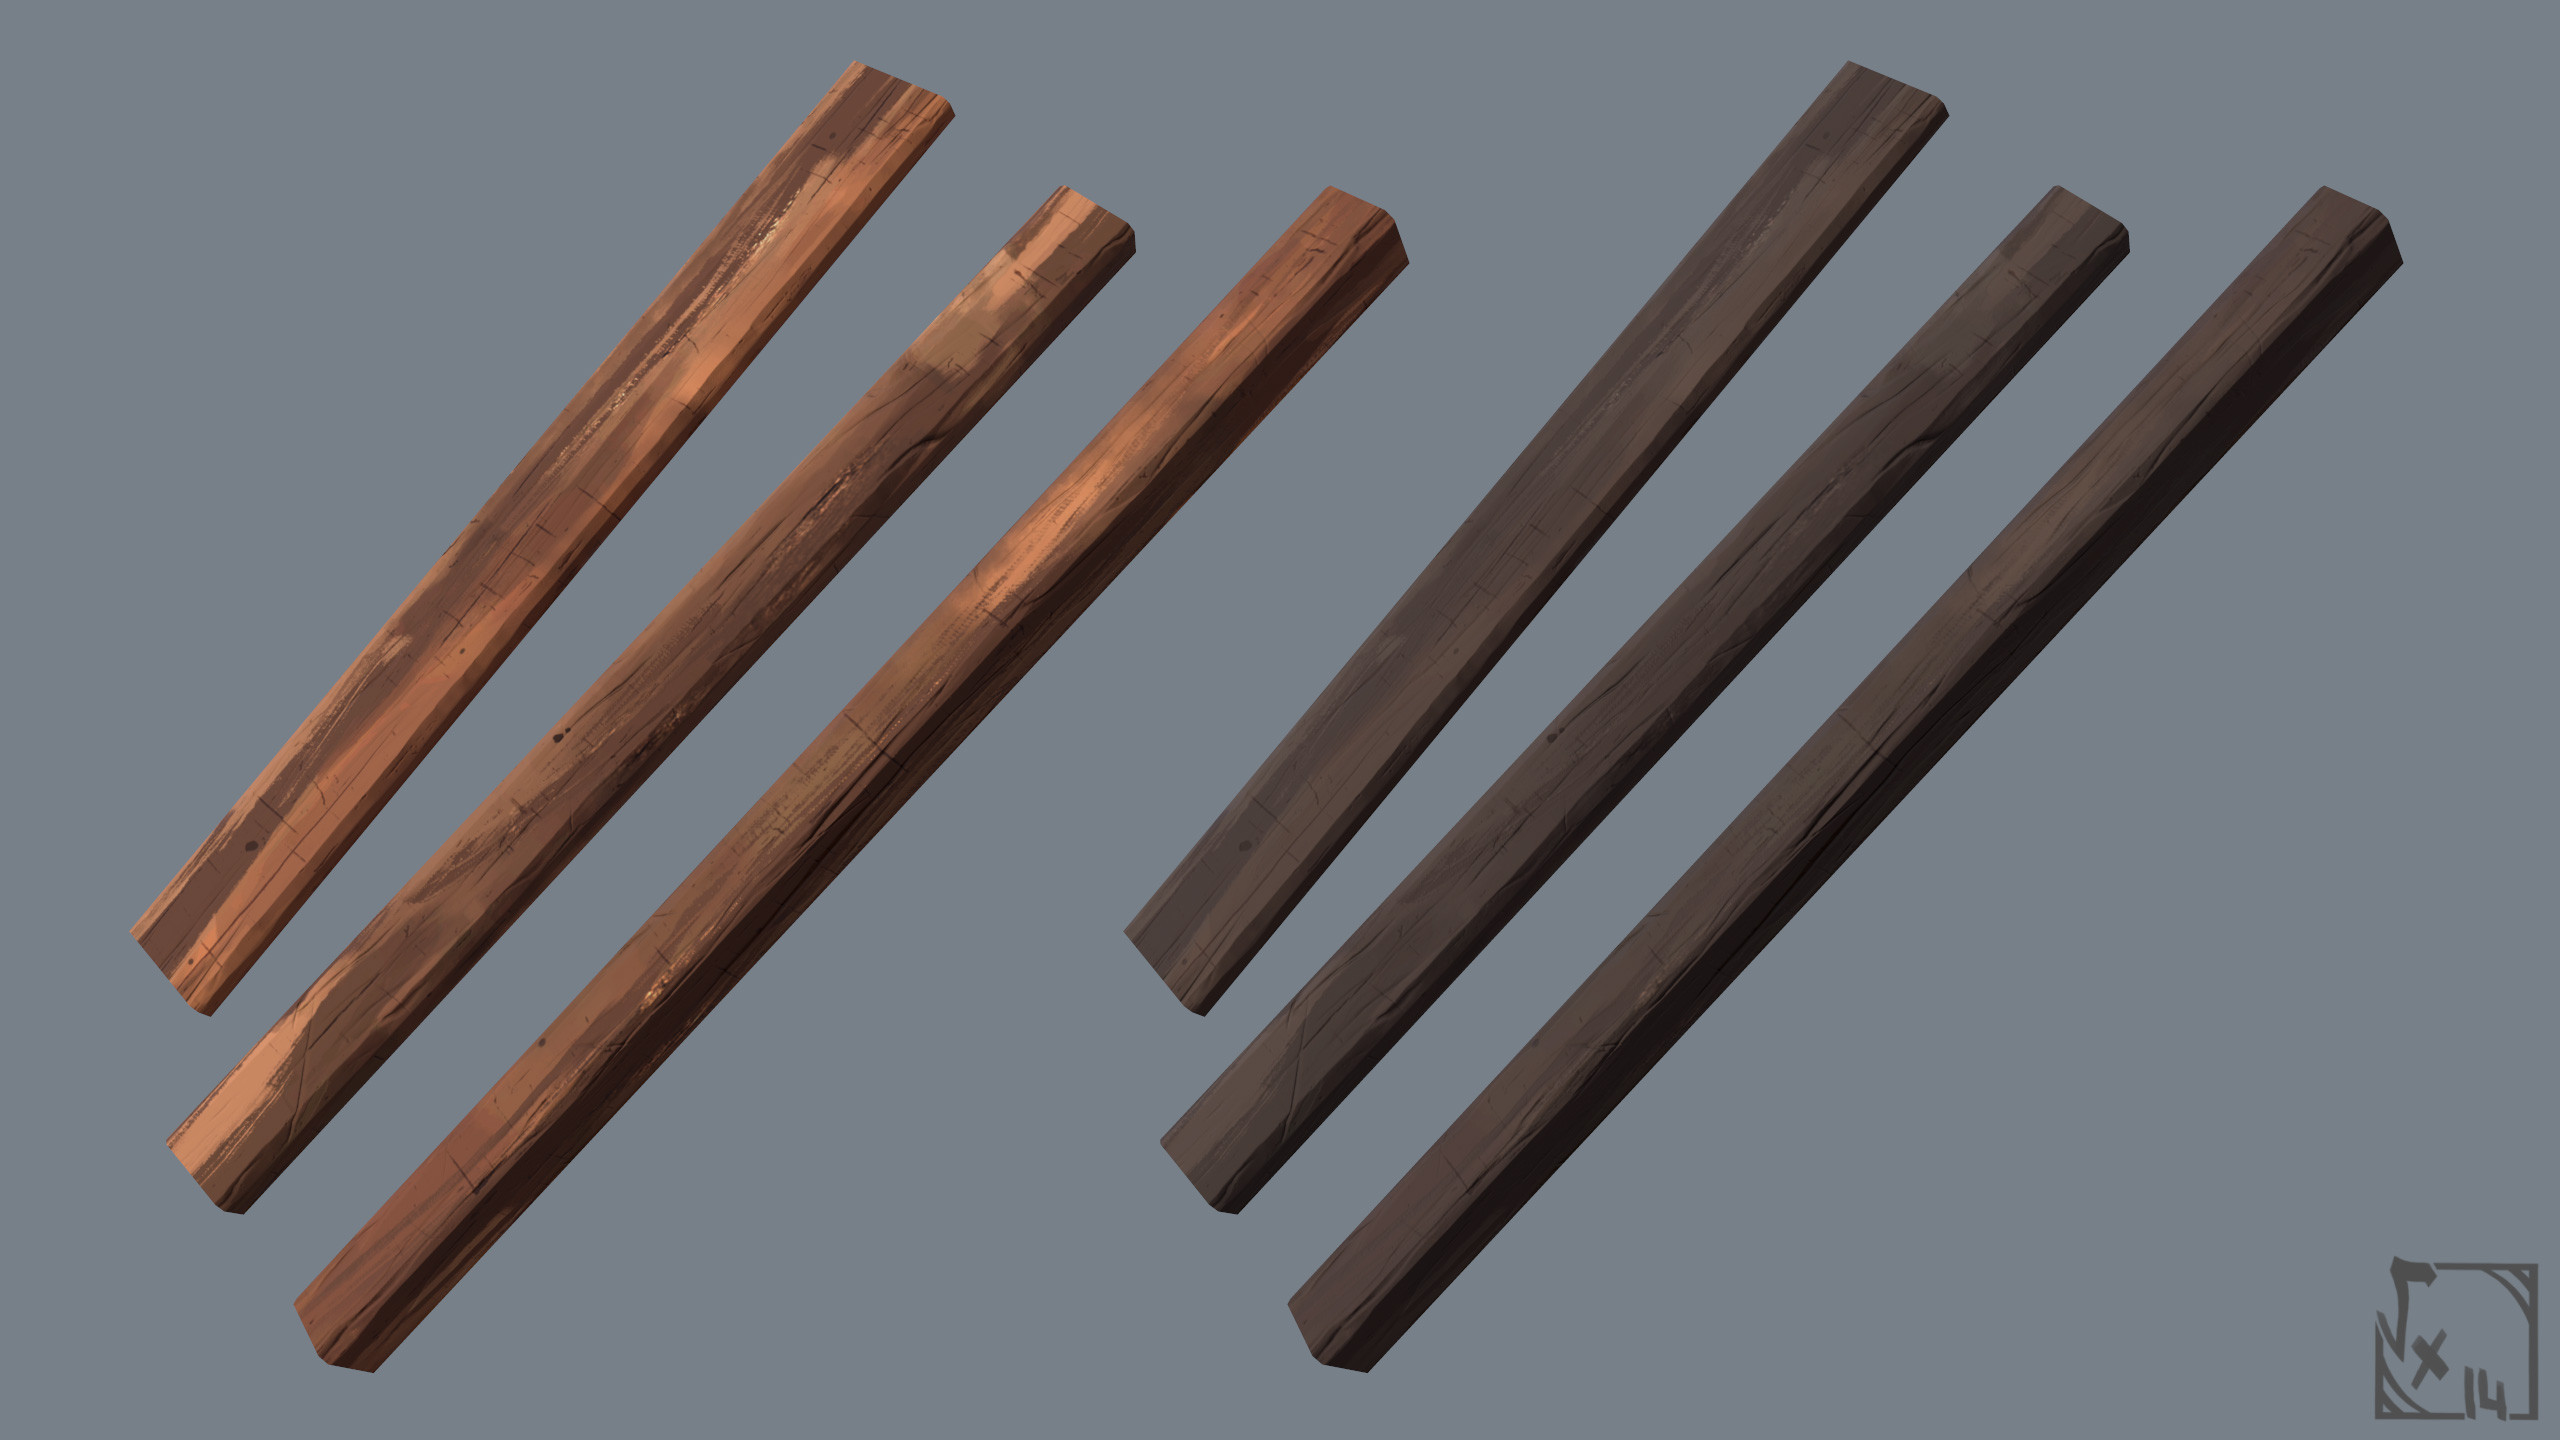 """Tileable wooden timber, used a lot like the tileable materials but only on """"wood architecture"""""""